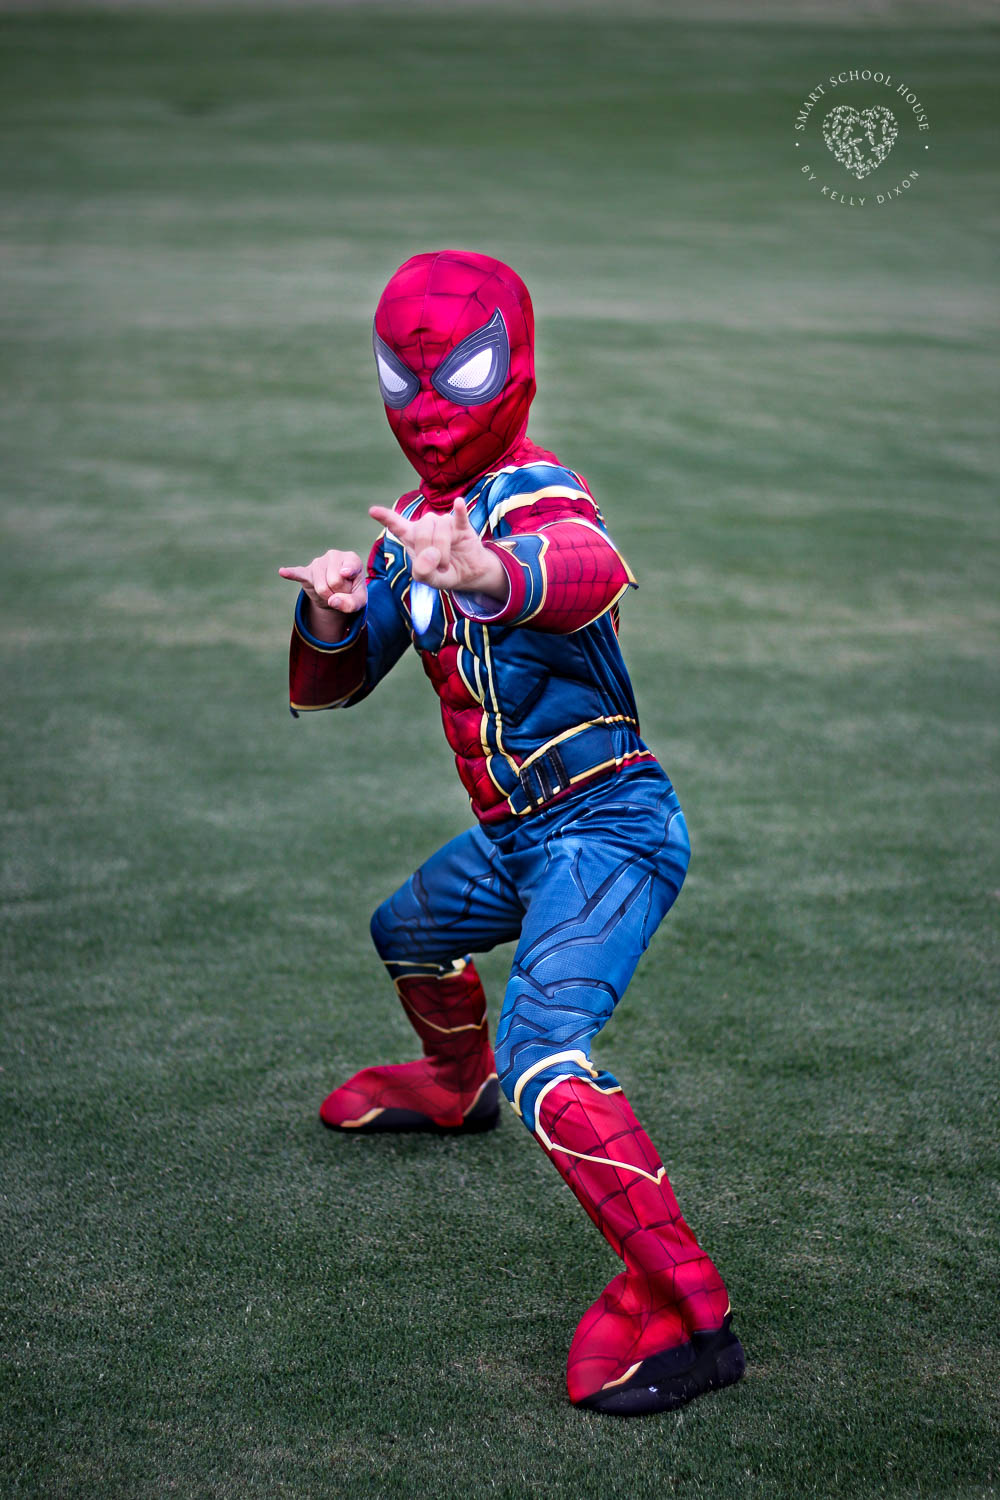 Boys Iron Spider Halloween costume for $15